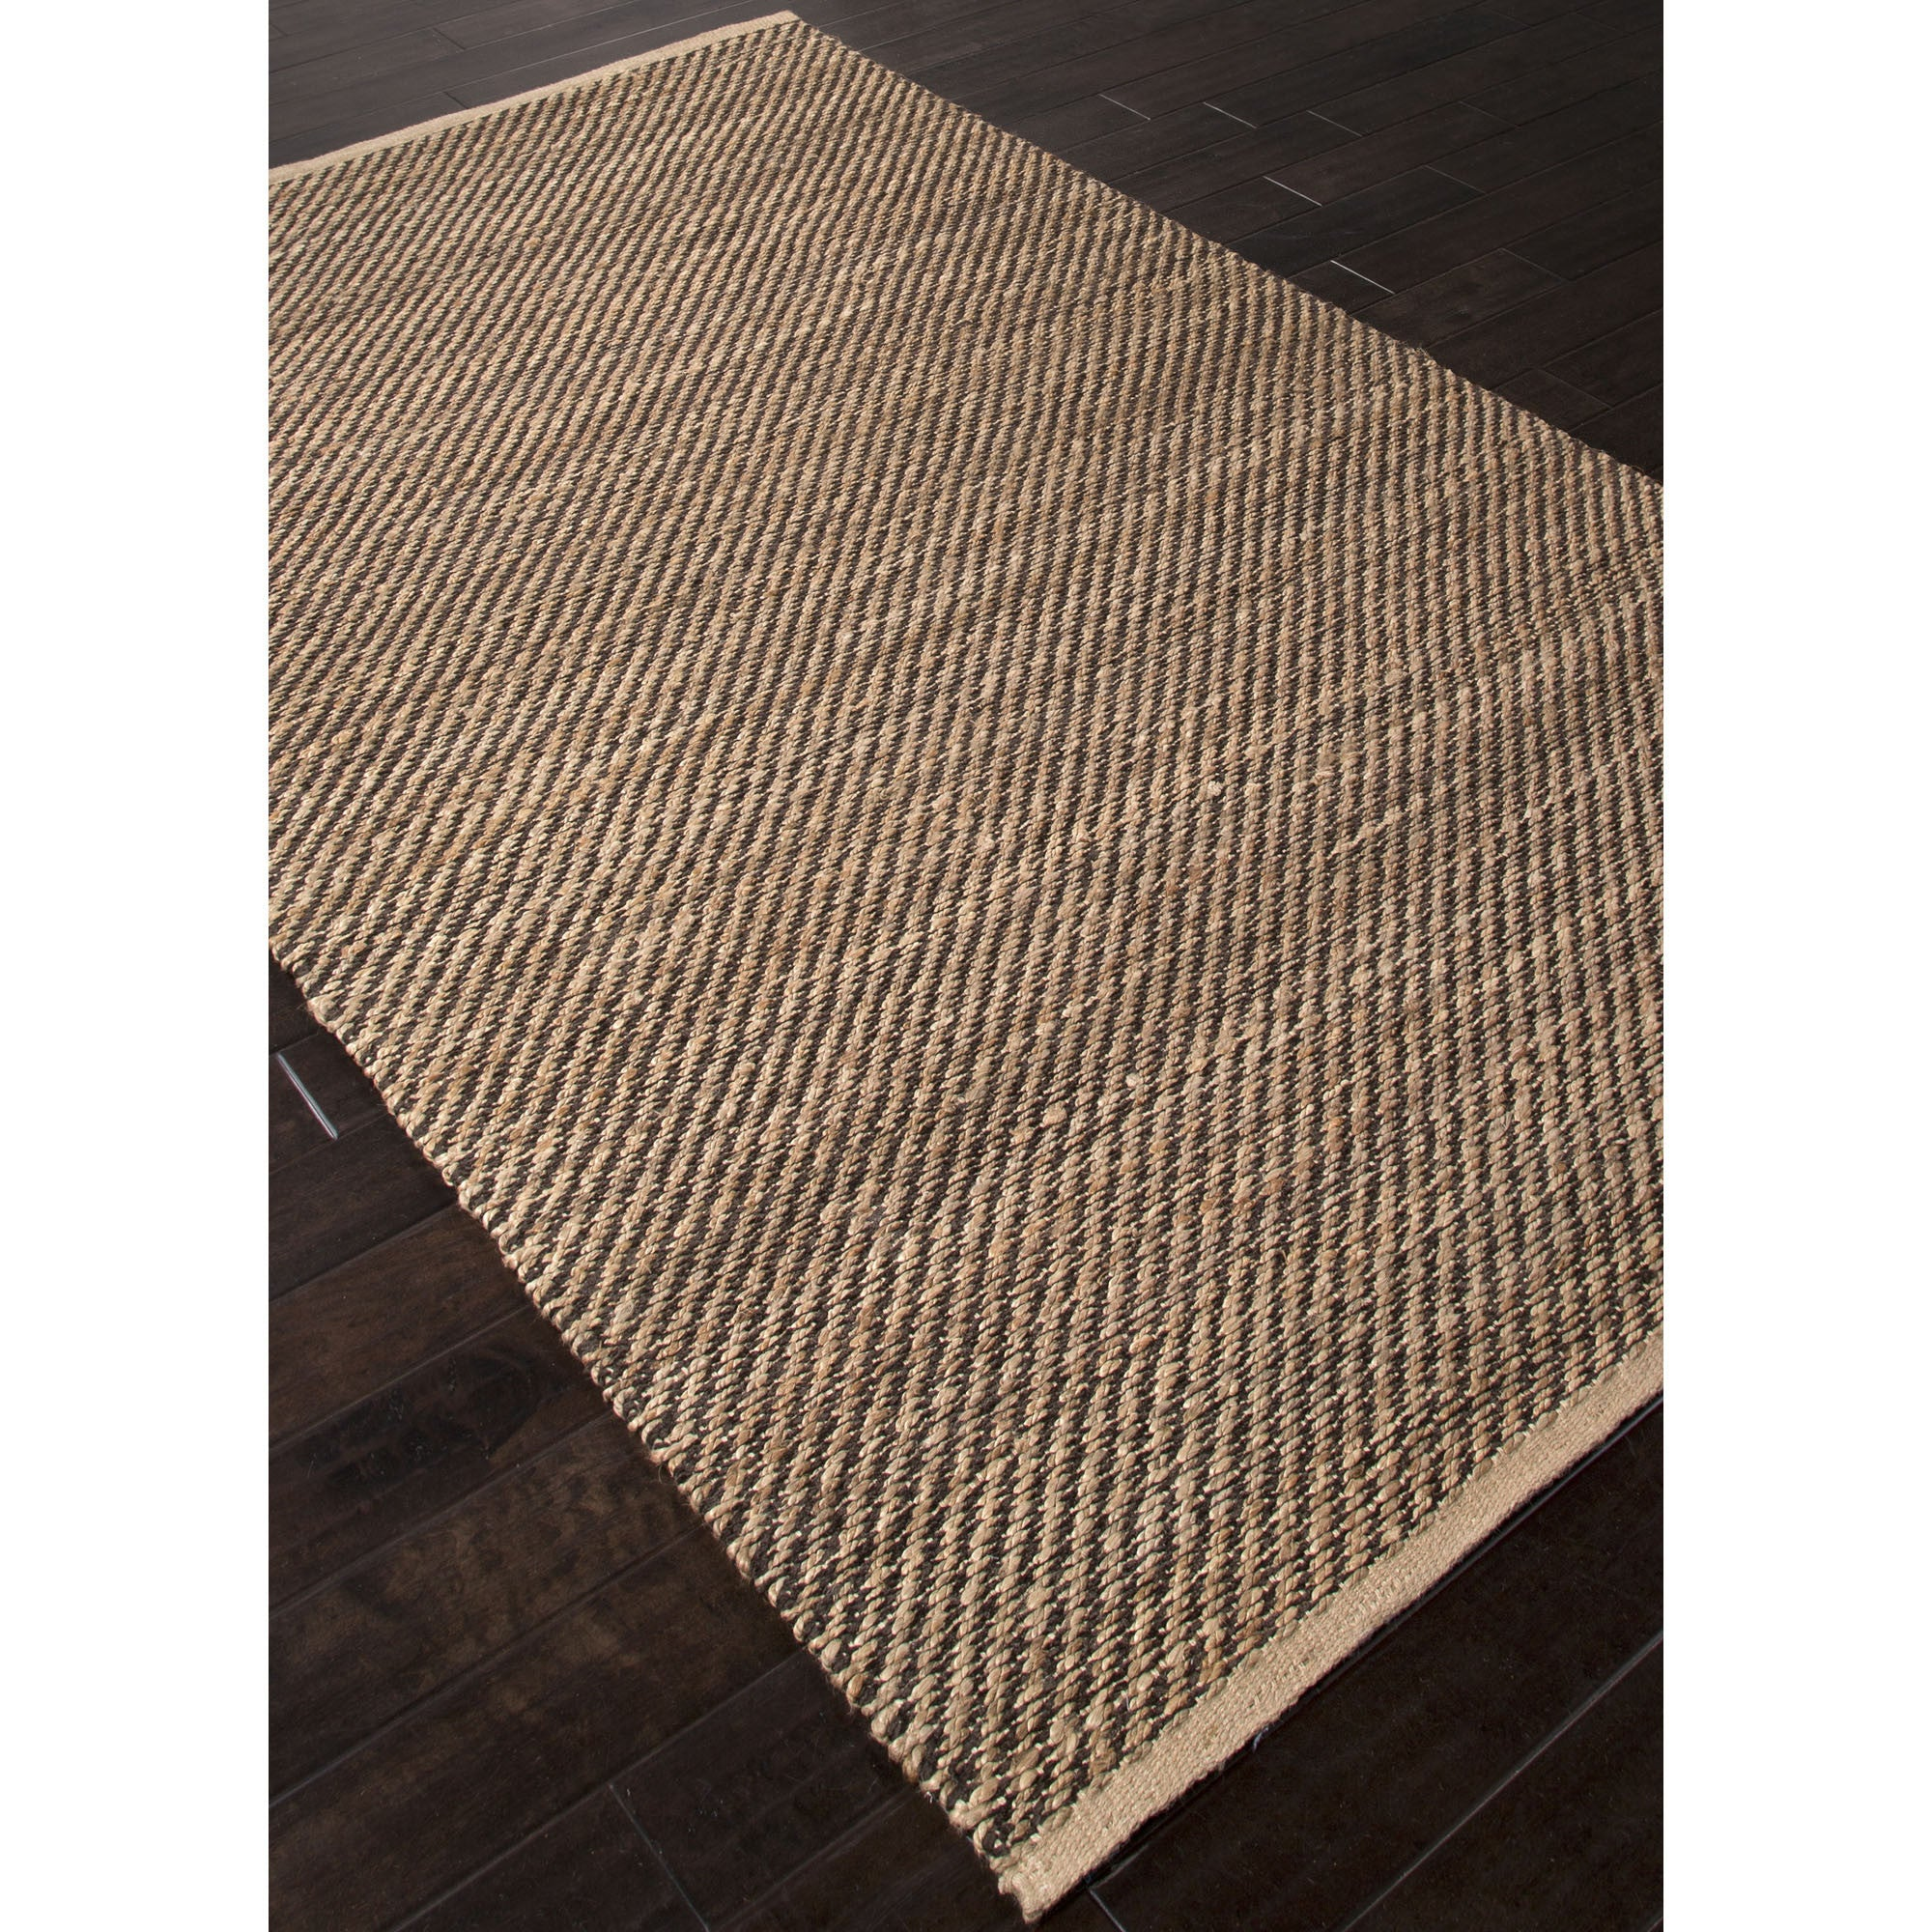 Jaipur Rugs Naturals Solid Pattern Taupe Black Jute And